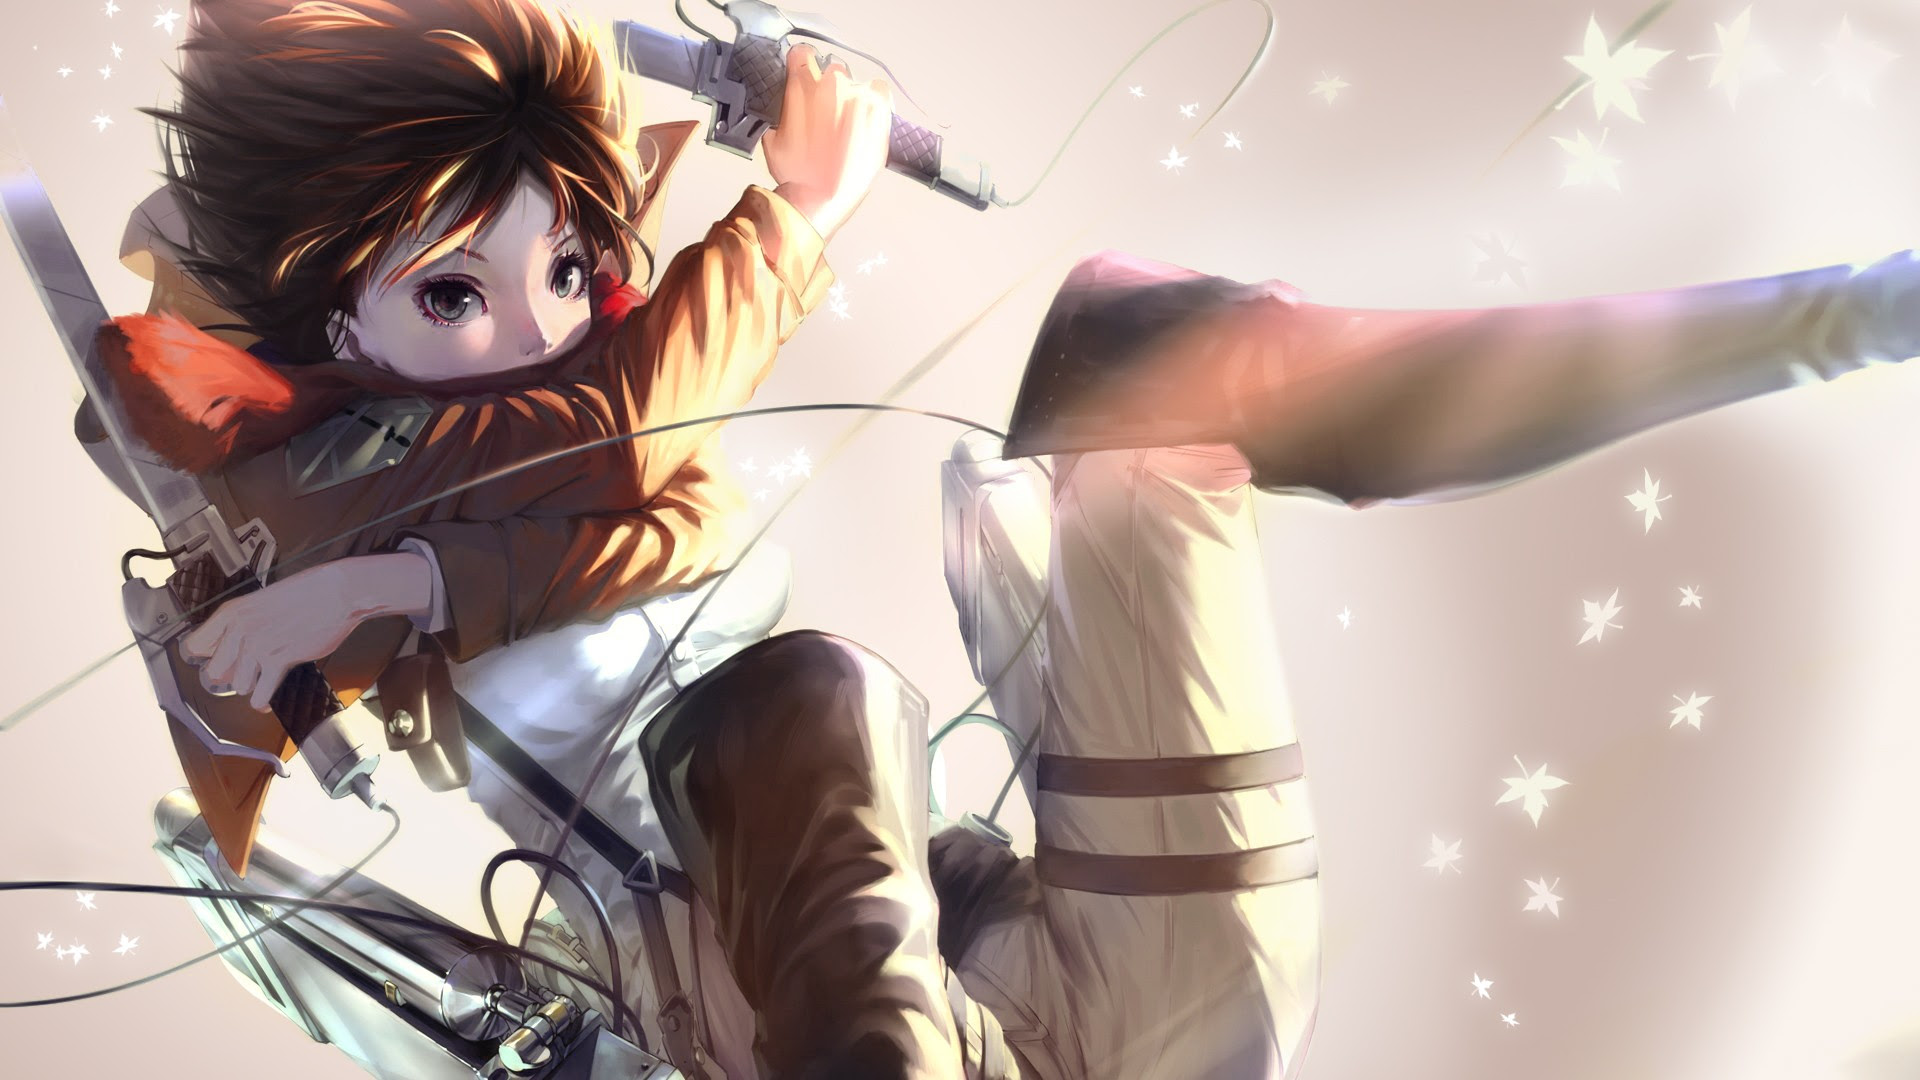 Attack On Titan Wallpaper 1920x1080 Images